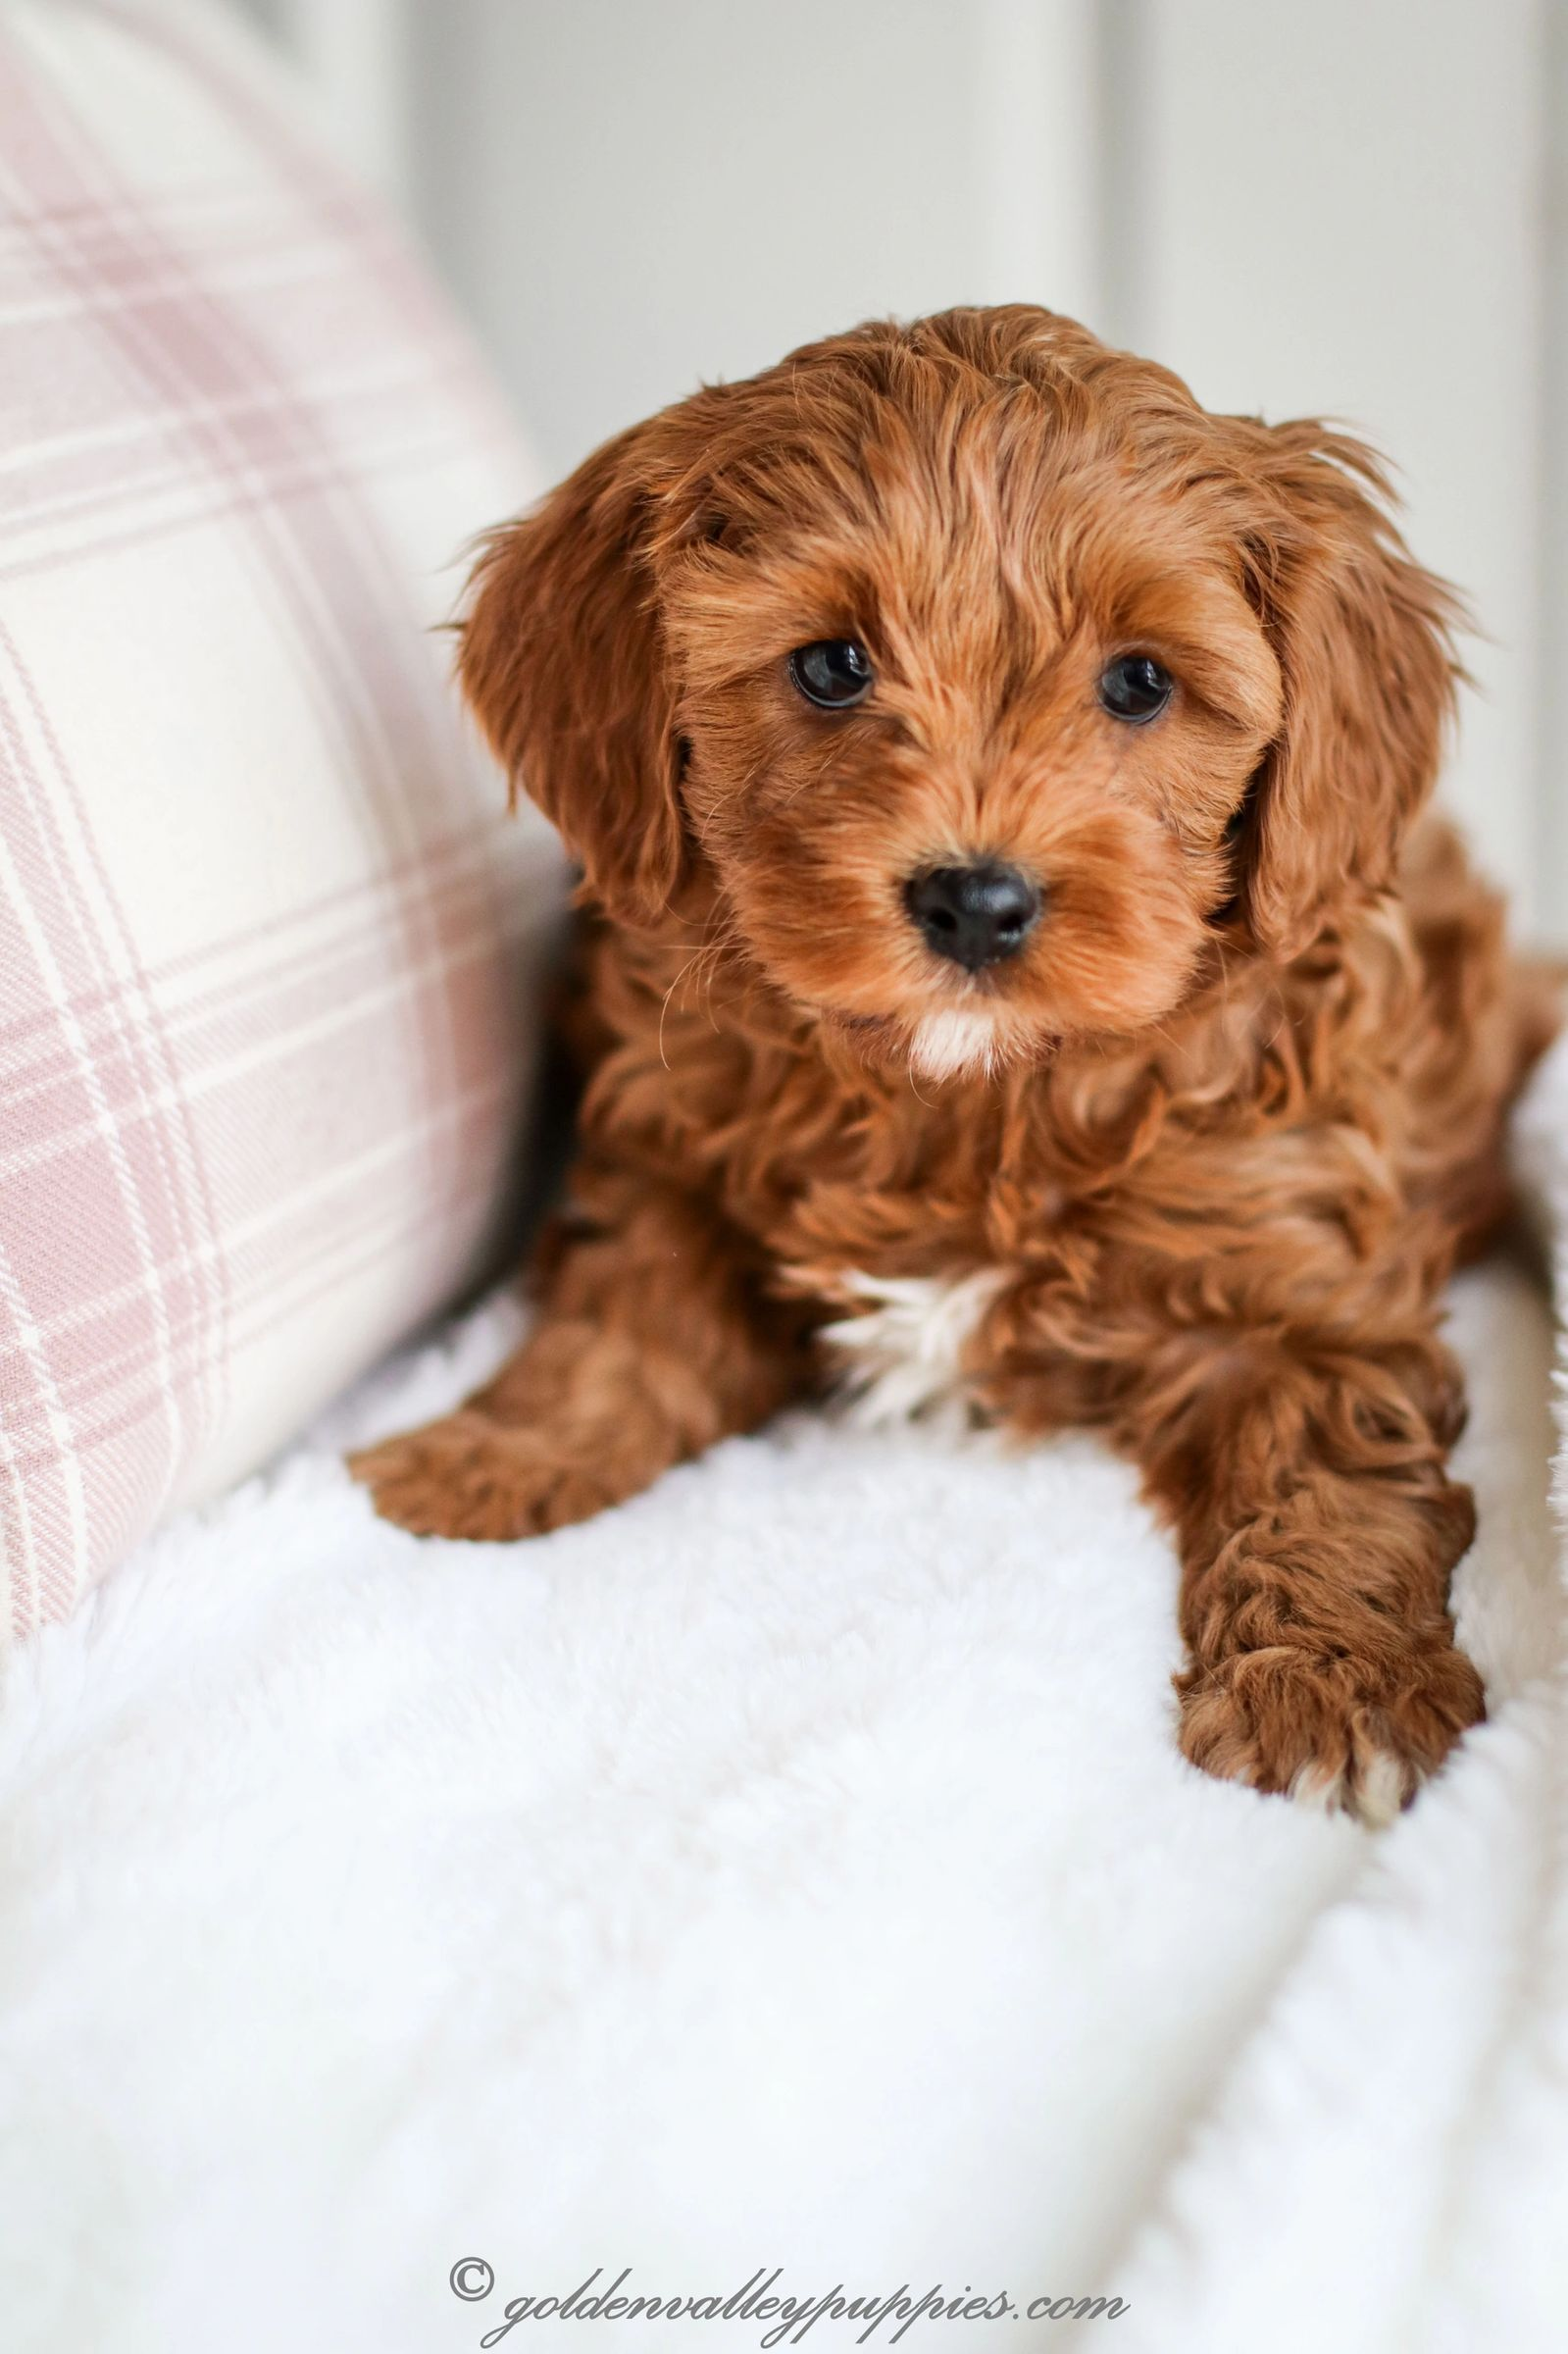 Our Puppy Album Cavapoo Puppies For Sale Golden Valley Puppies Cavapoo Puppies King Charles Cav In 2020 Cavapoo Puppies Cavapoo Puppies For Sale Puppies For Sale